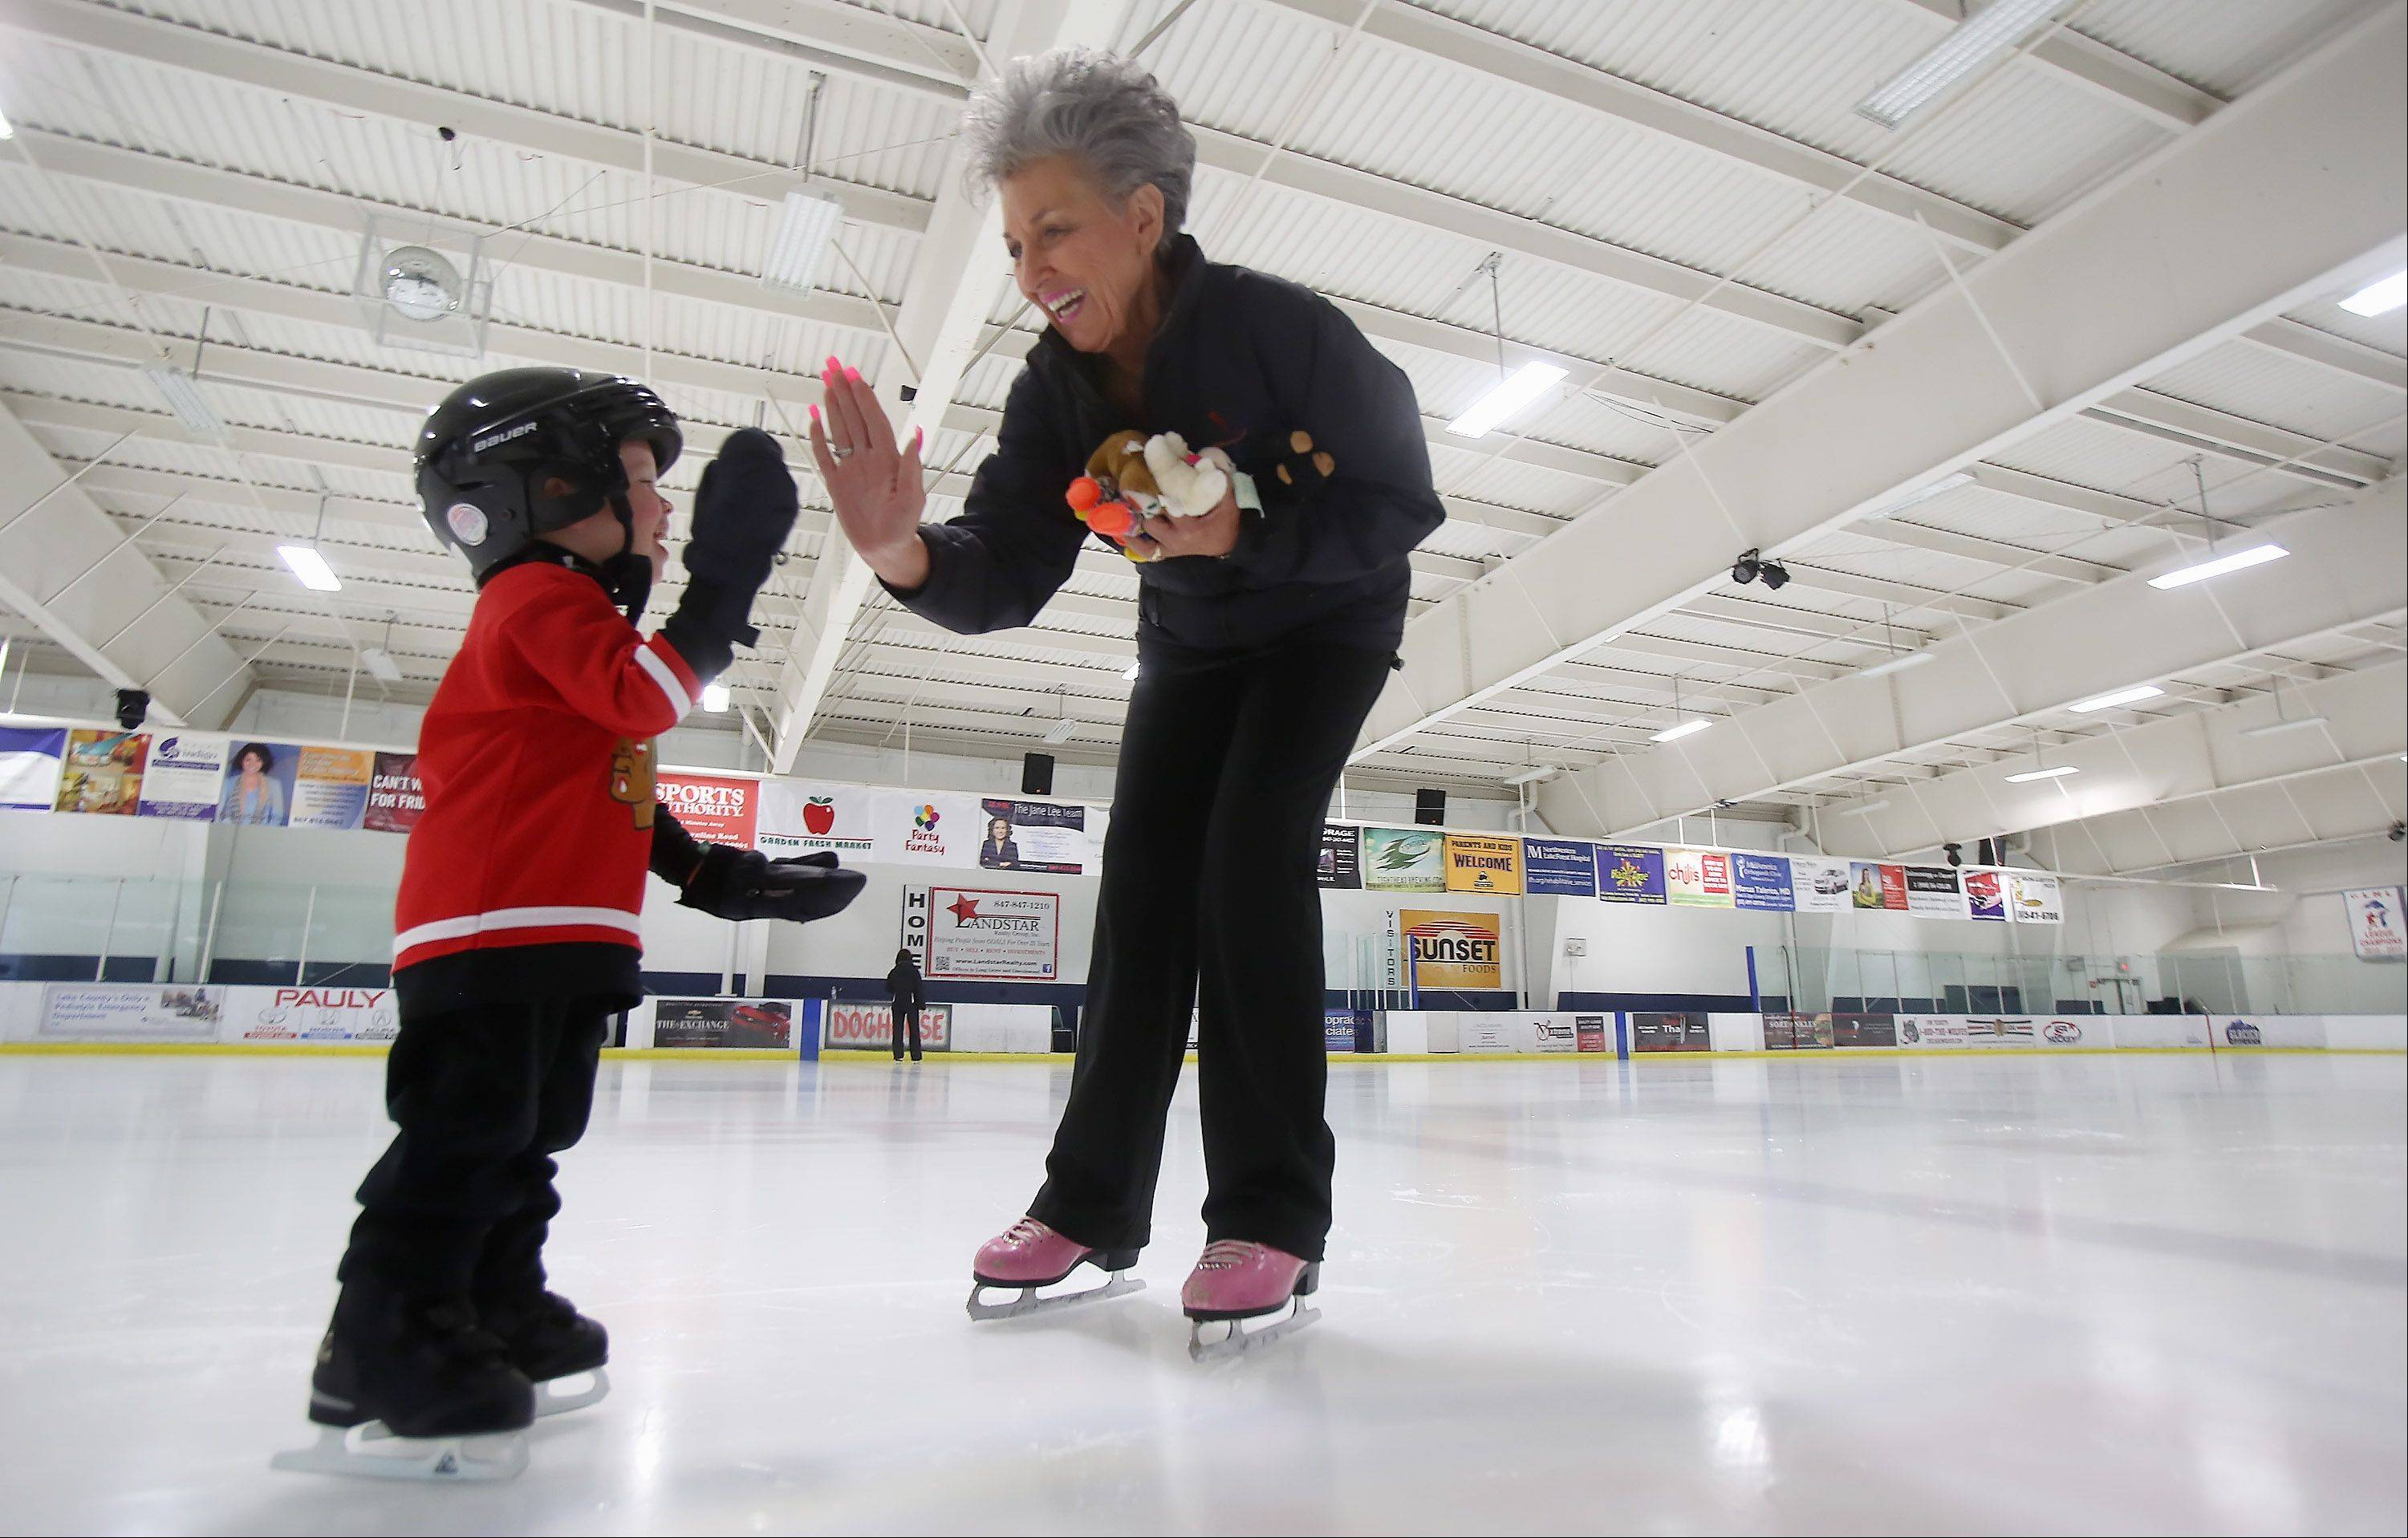 Ice skating instructor Karen Kay Lavris works with 2-year-old Ryan Shaffer, of Mettawa, at Glacier Ice Arena in Vernon Hills teaching him how to skate.